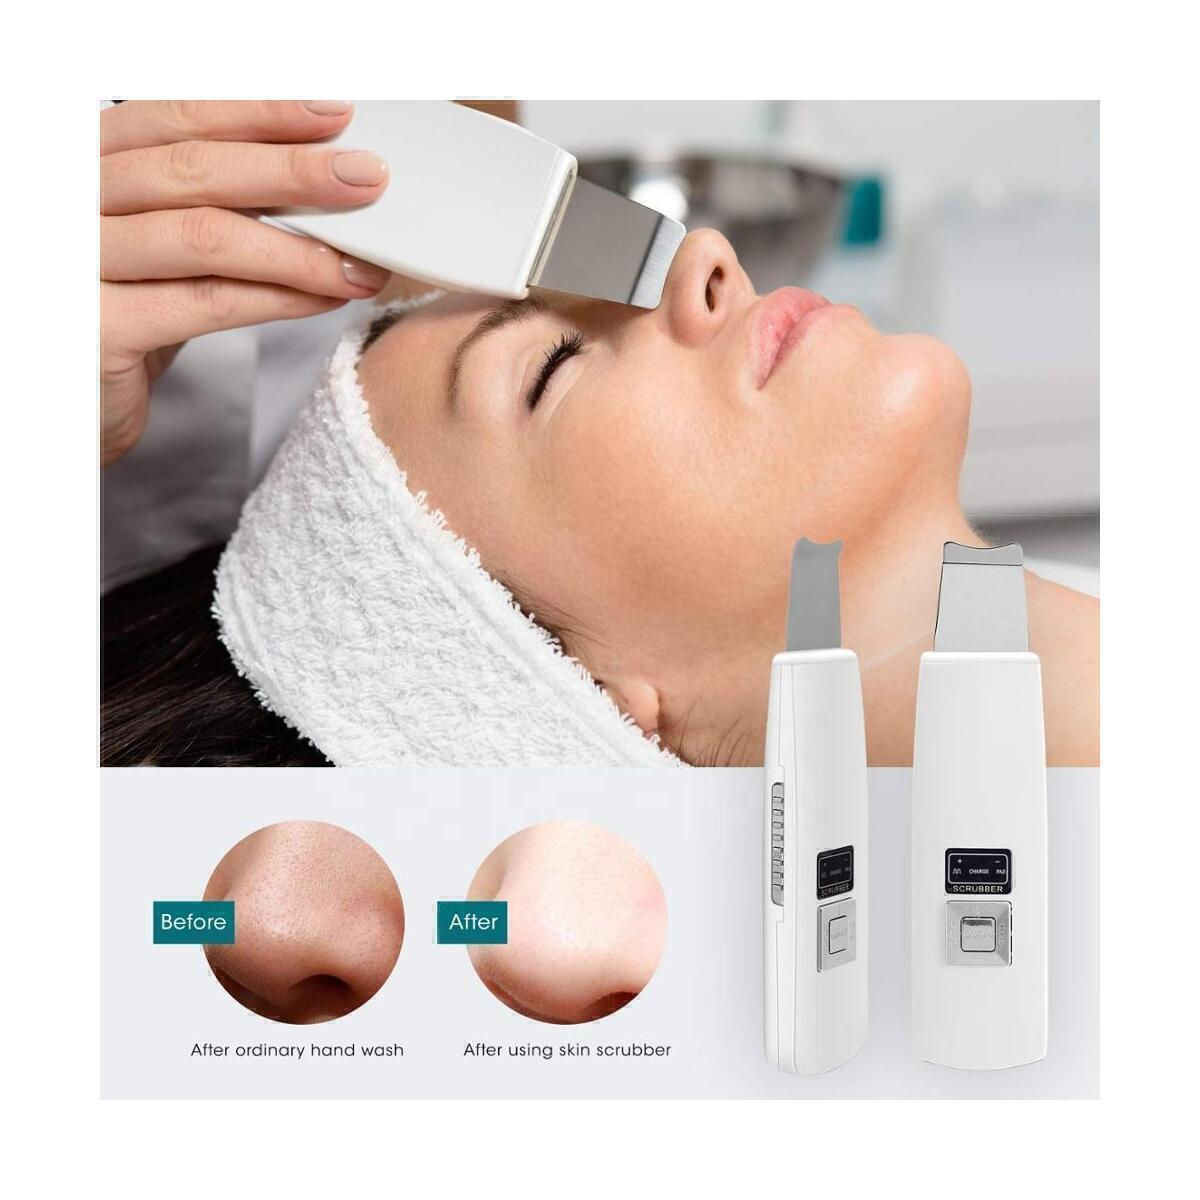 SkinAngel Ultrasonic Ionic Skin Scrubber at our Amazon Store